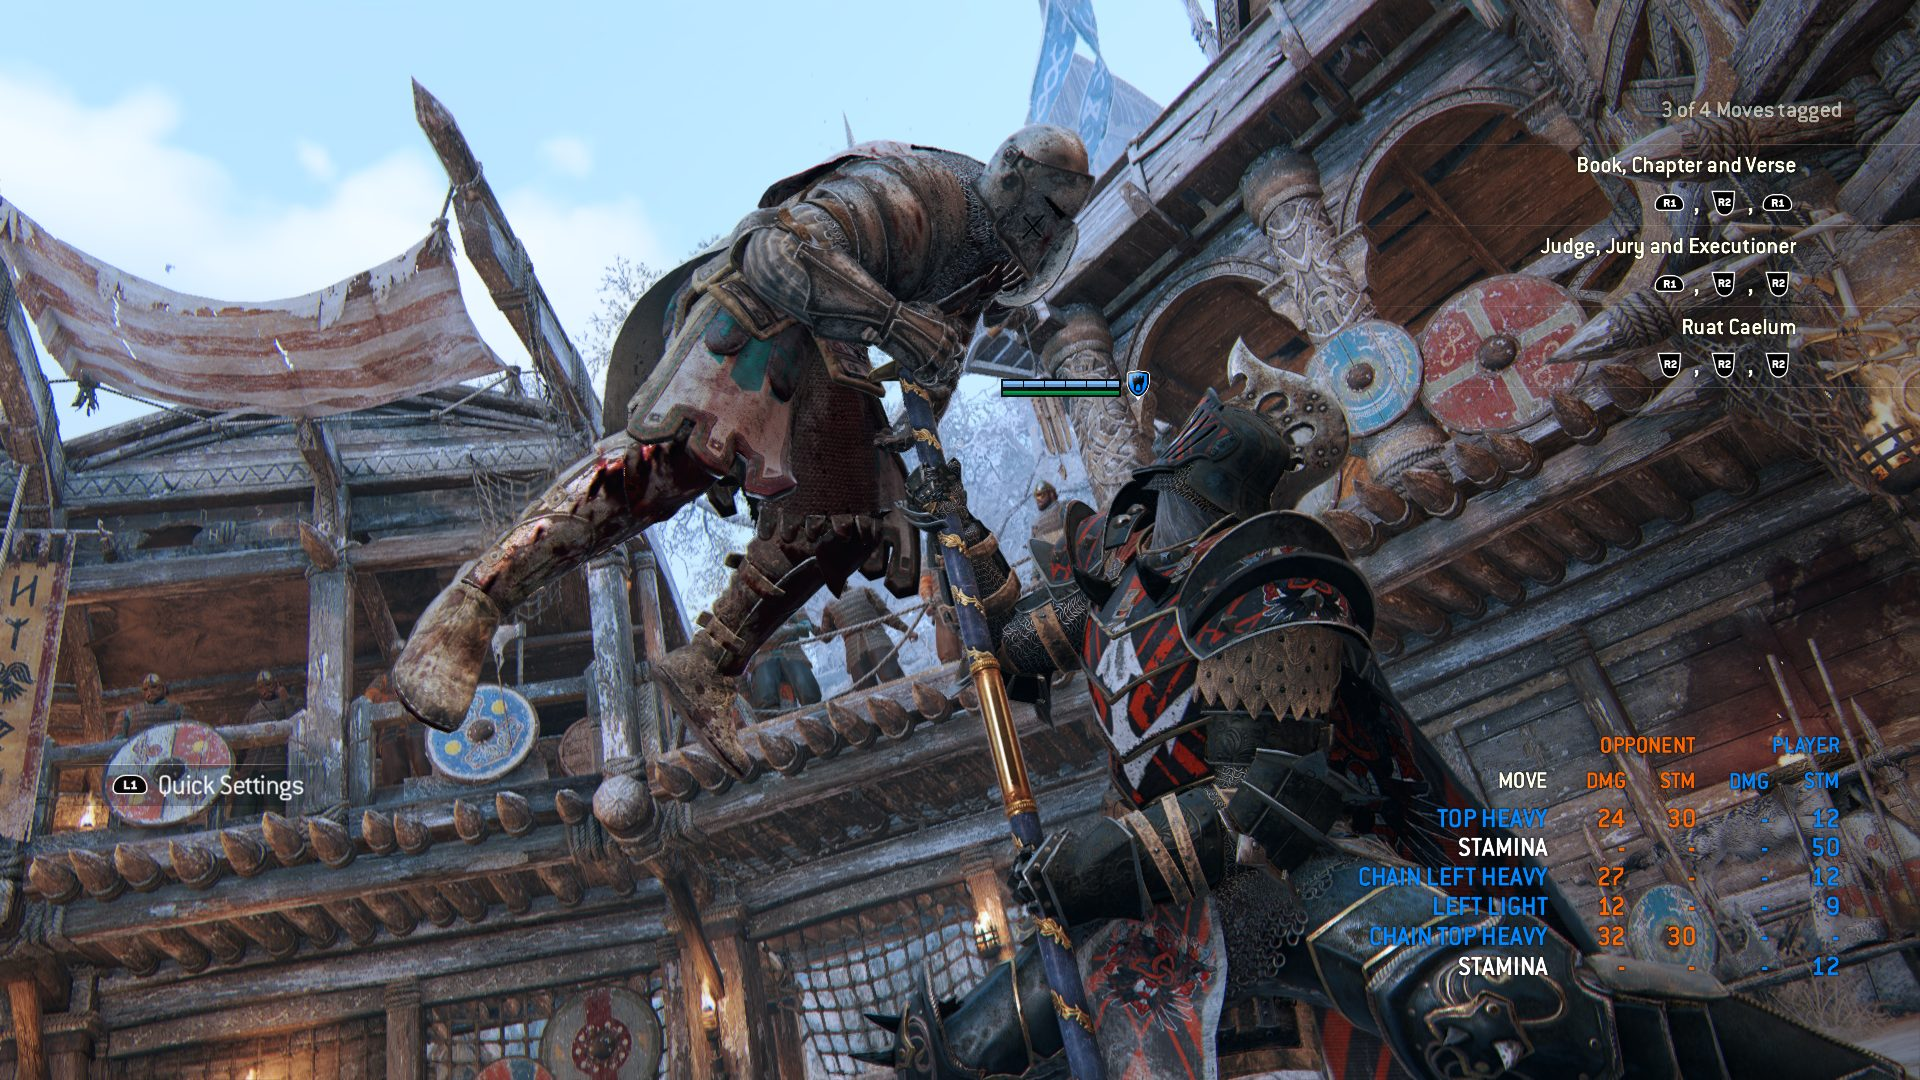 In-game screenshot of the Lawbringer executing an enemy by piercing his chest with his halberd